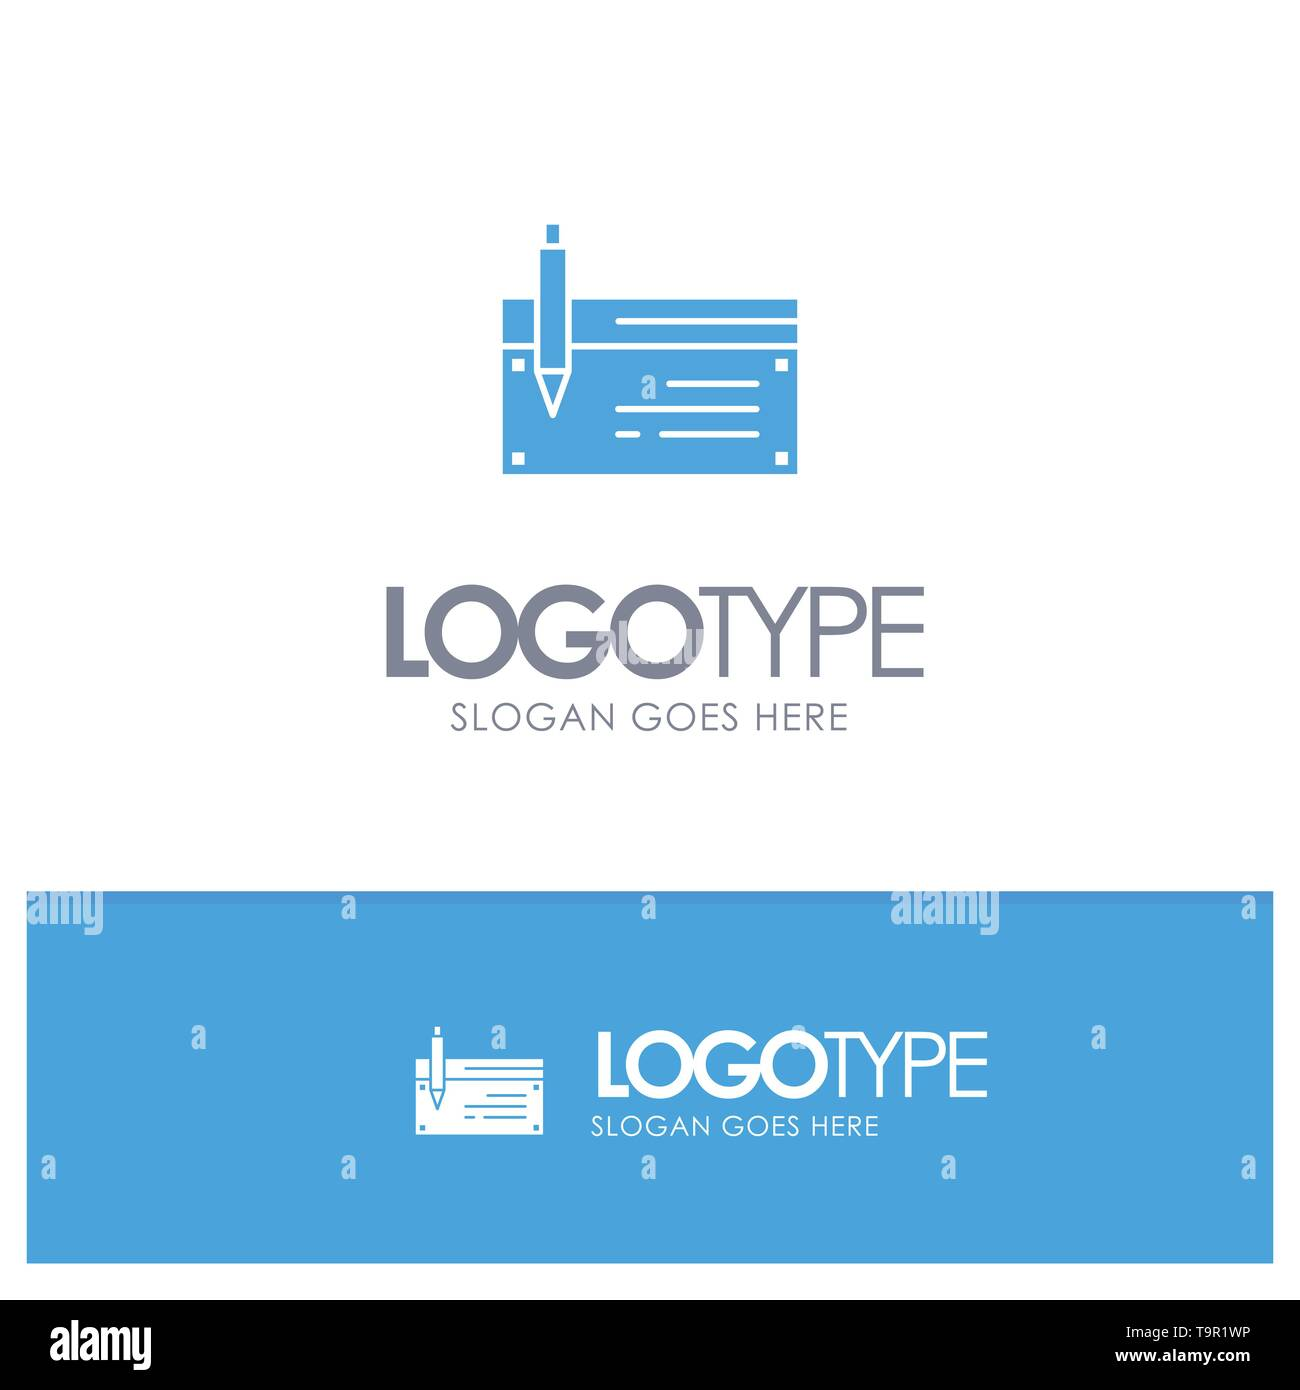 Check, Account, Bank, Banking, Finance, Financial, Payment Blue Solid Logo with place for tagline - Stock Image